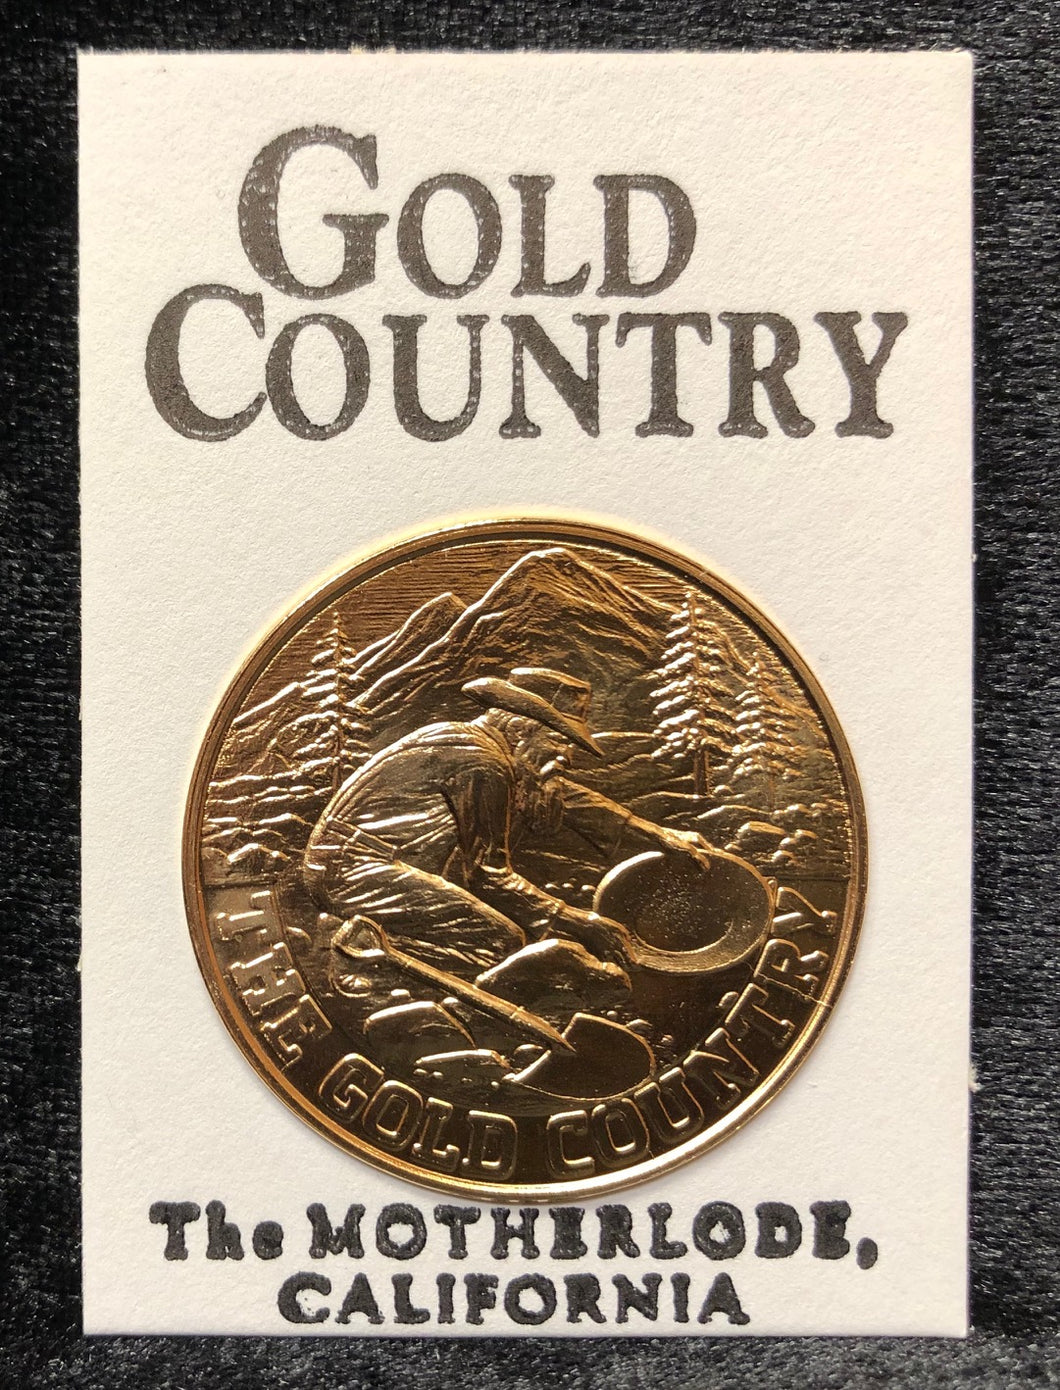 Gold Country Commemorative Coin